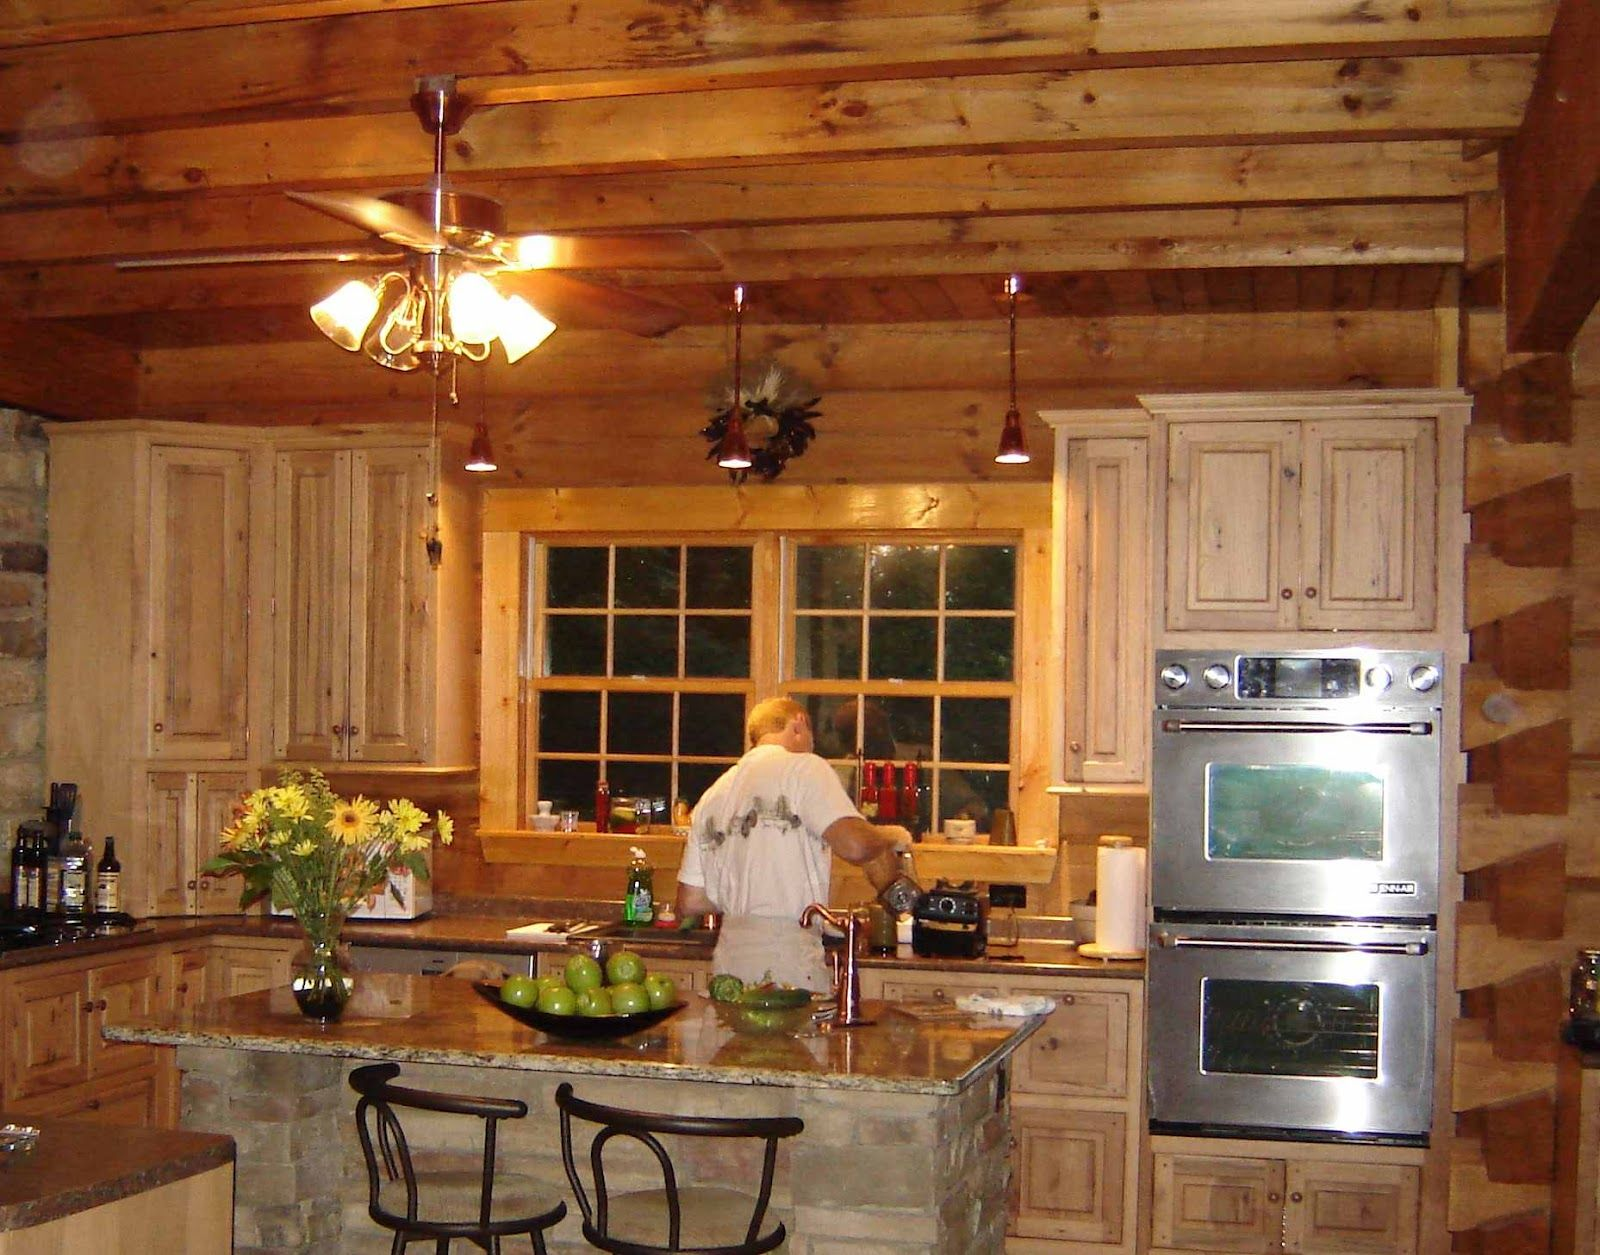 Stunning Country Kitchen with Small Breakfast Bar Decorated with